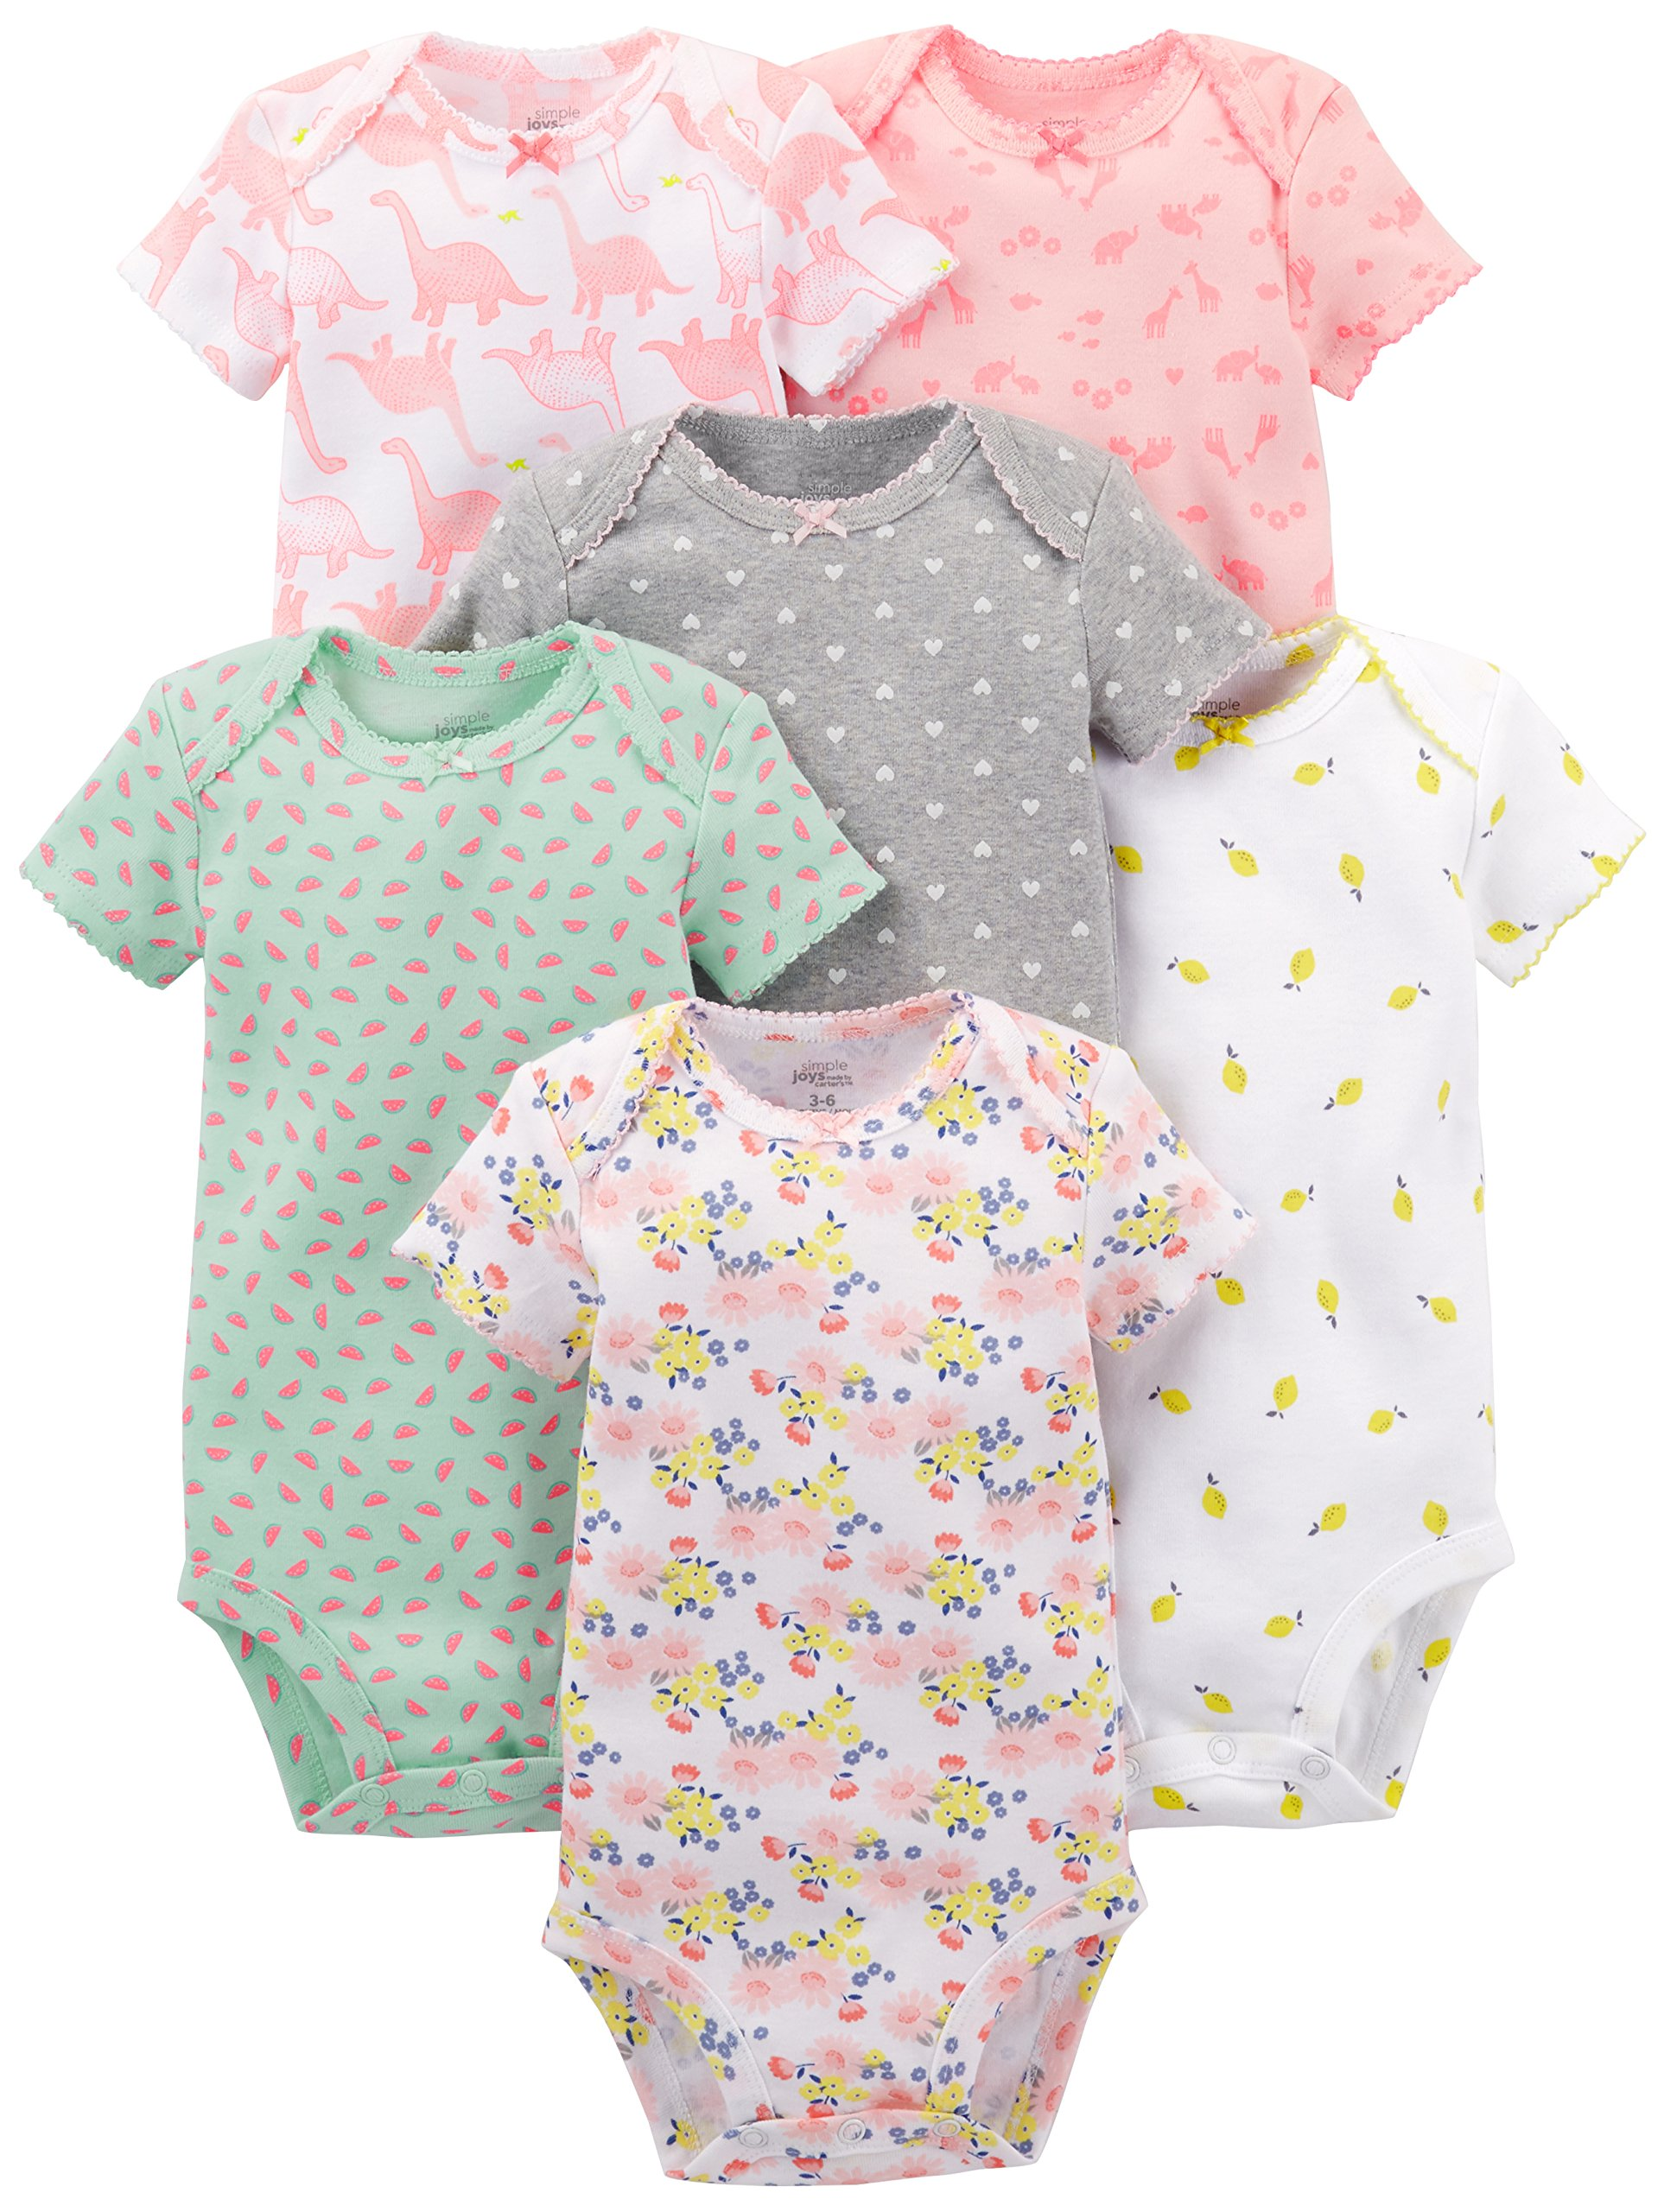 Simple Joys by Carter's Baby Girls' 6-Pack Short-Sleeve Bodysuit, Pink Dino, Floral, Mint, White, Gray, 12 Months